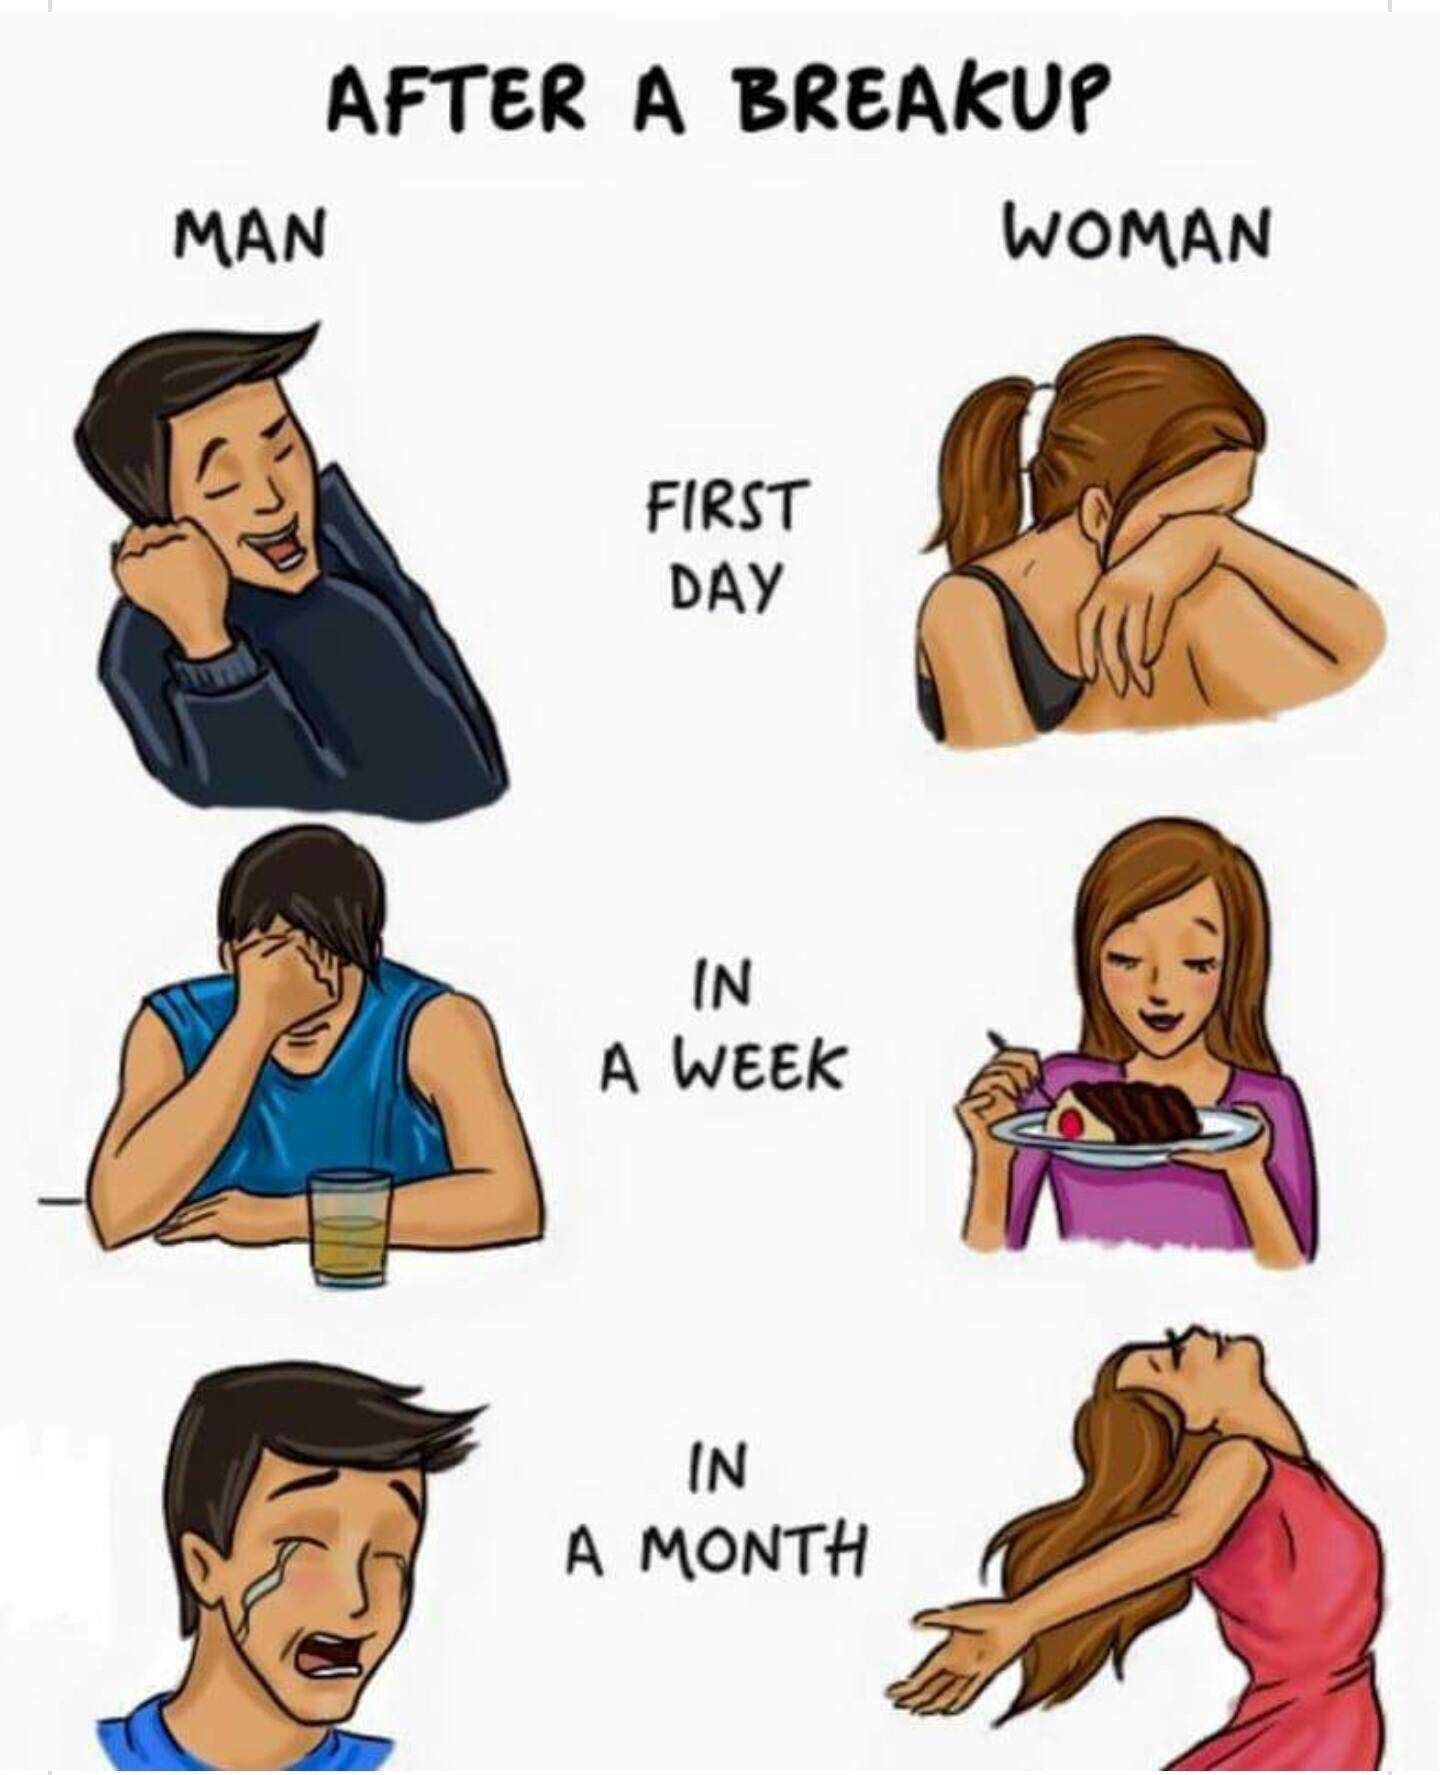 Stages of a breakup for a man